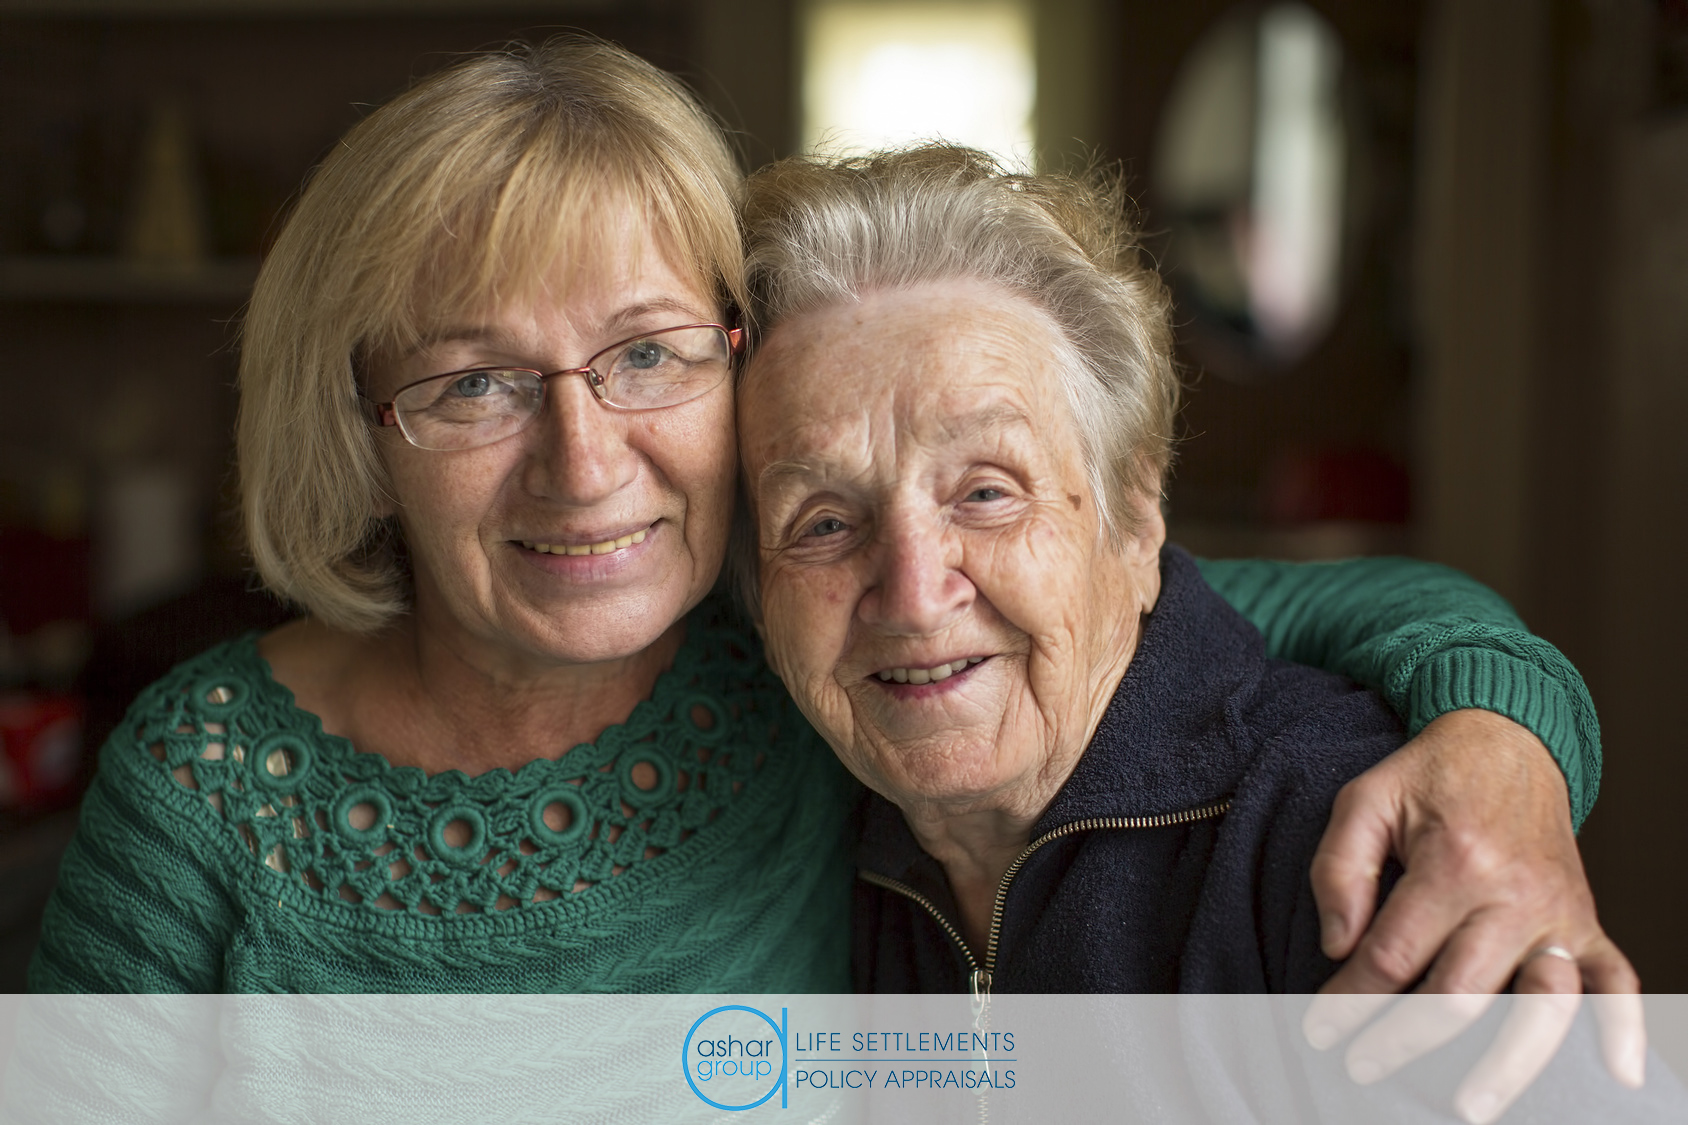 Portrait of woman with her senior mother age 100, who may have her life insurance policy canceled